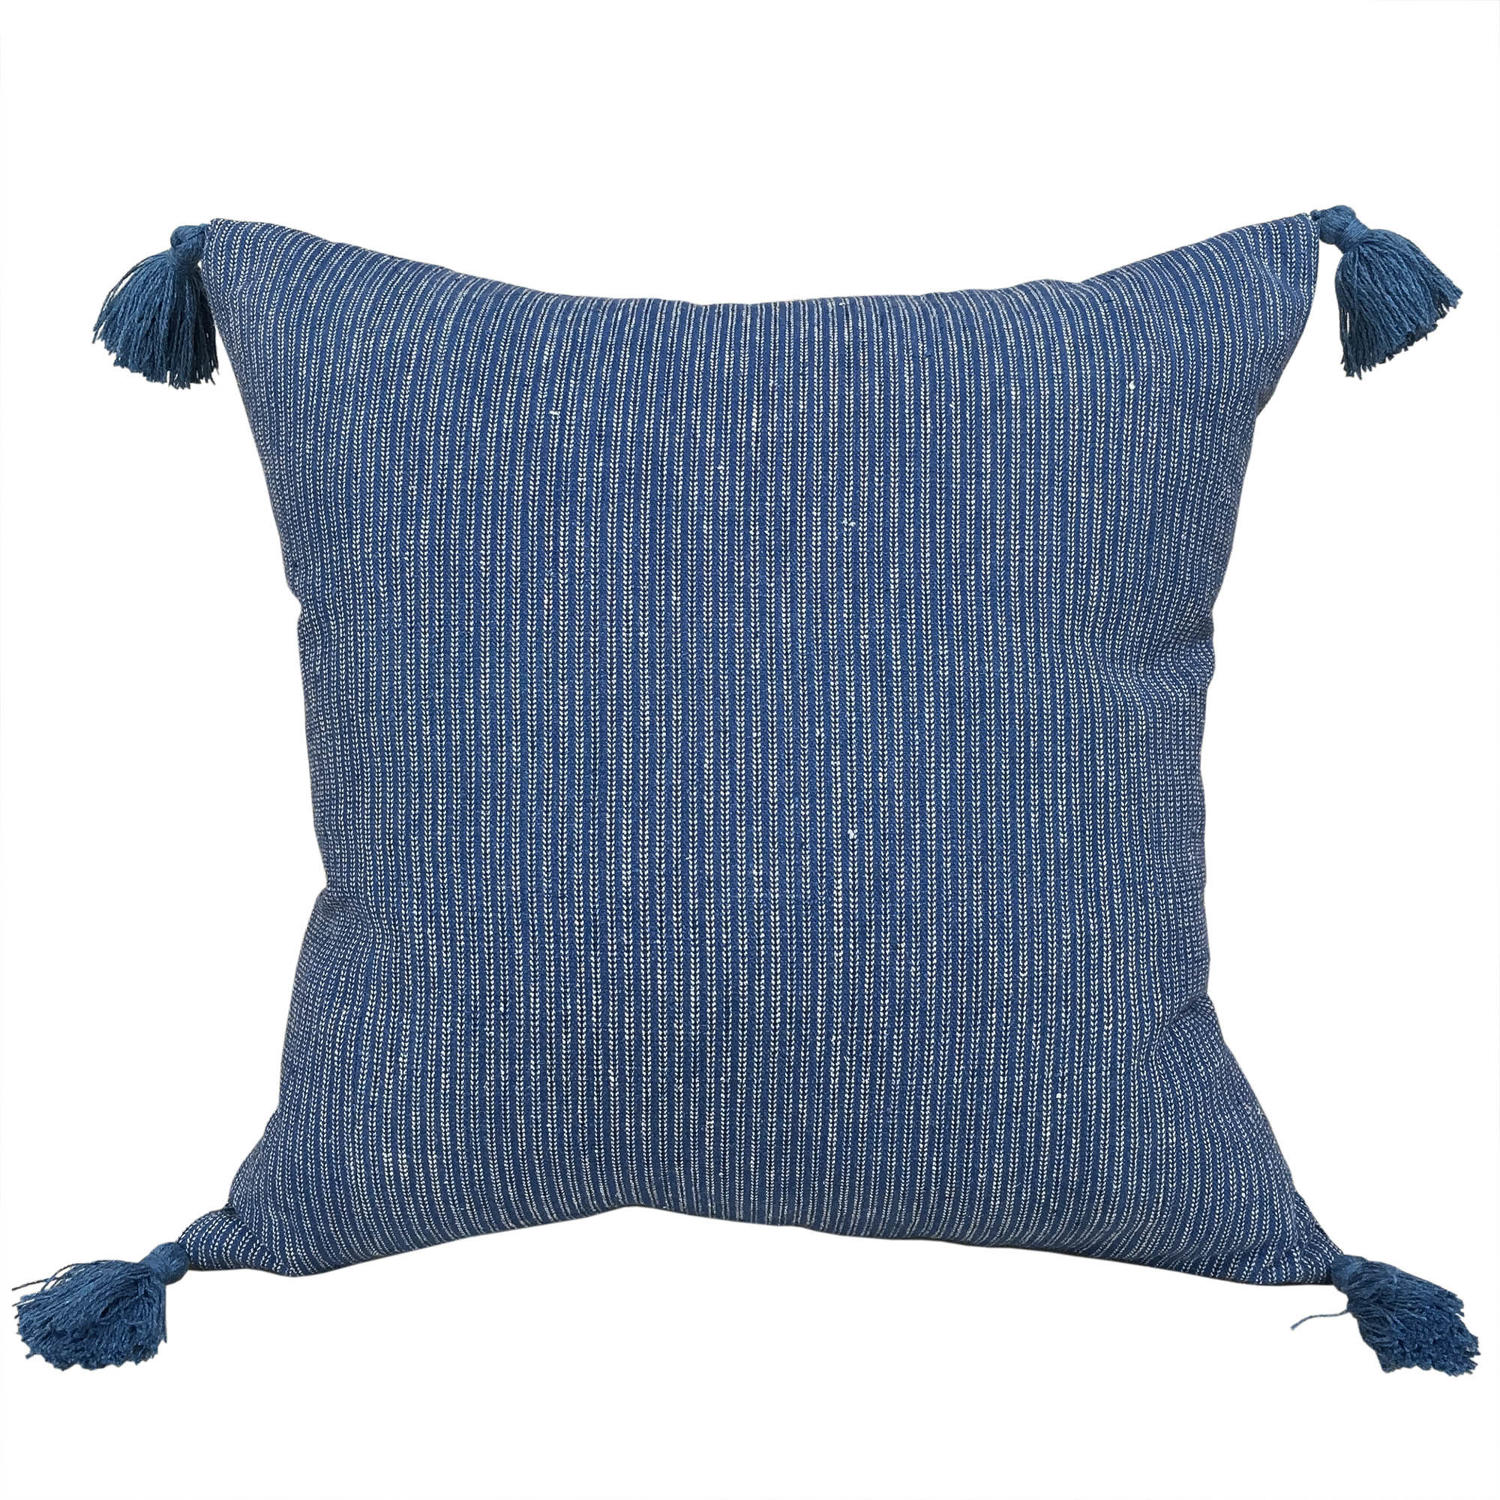 Buyi Indigo Cushions with Tassels